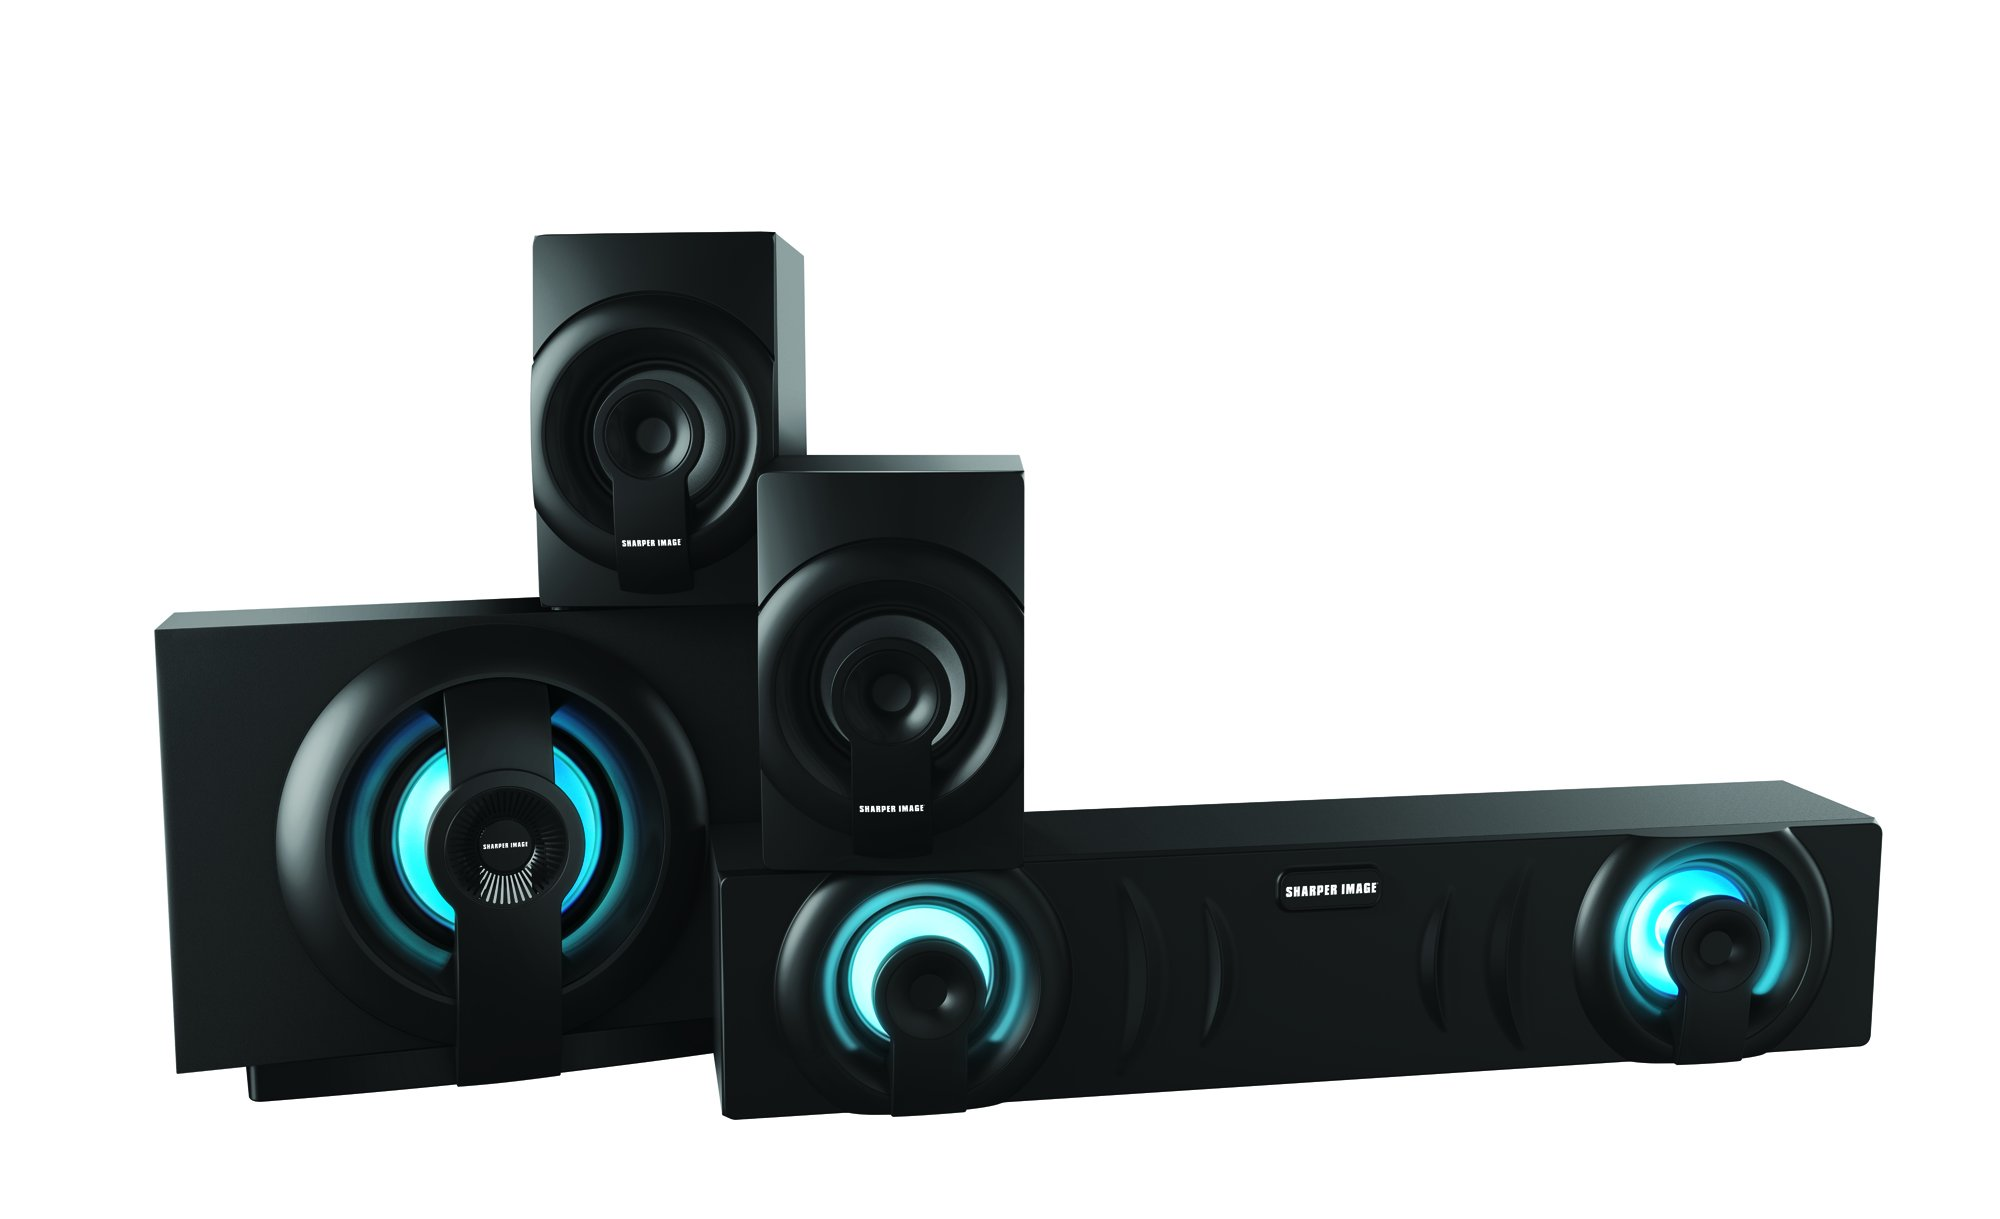 Sharper Image SBT3009BK Home Theater In a Box 3.1 Sound System With Subwoofer, Bluetooth Streaming From Any Device, Blue LED Light Sets The Mood by Sharper Image